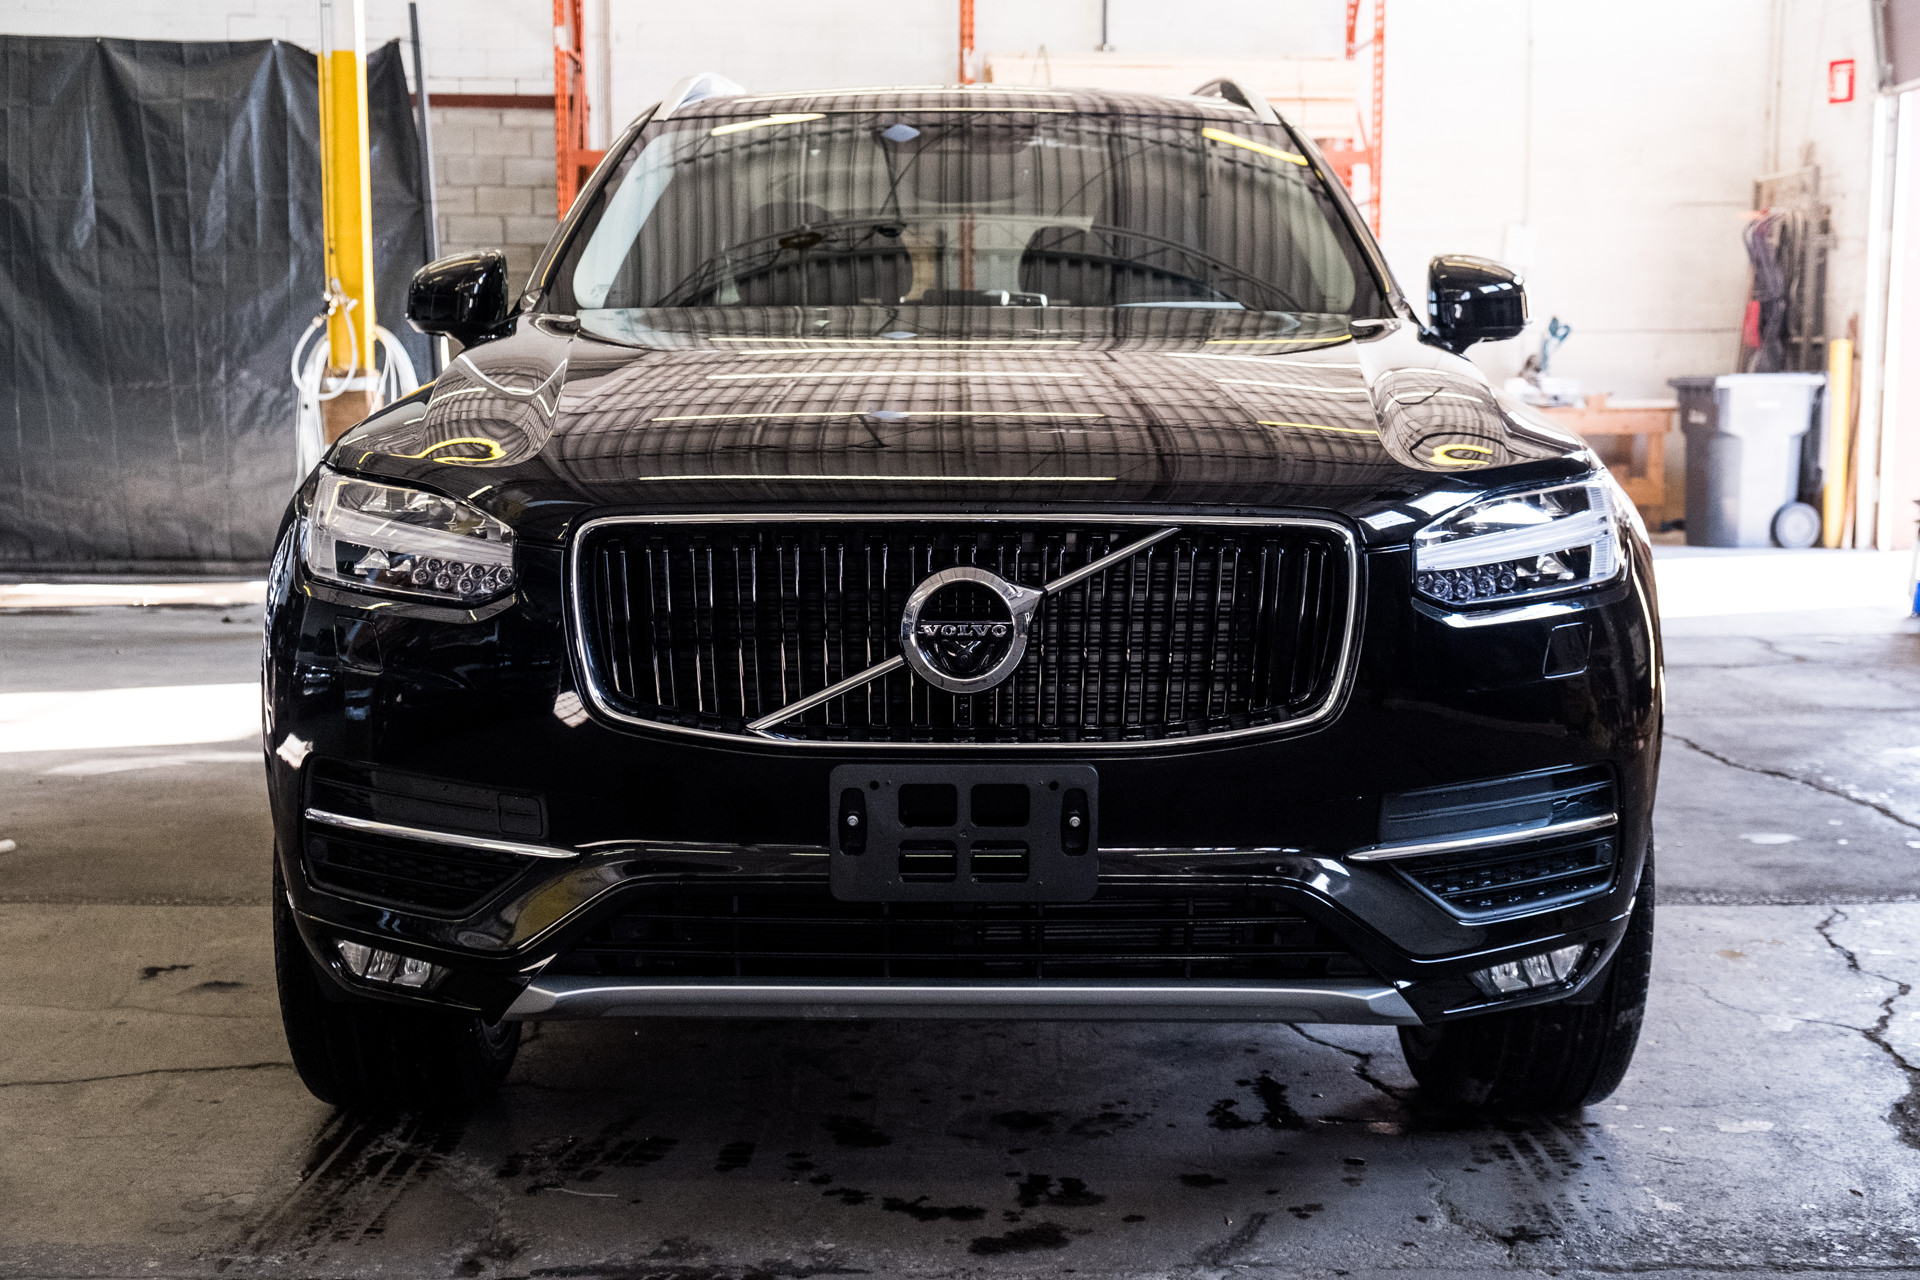 2018 volvo xc90 t6 awd jyc auto. Black Bedroom Furniture Sets. Home Design Ideas